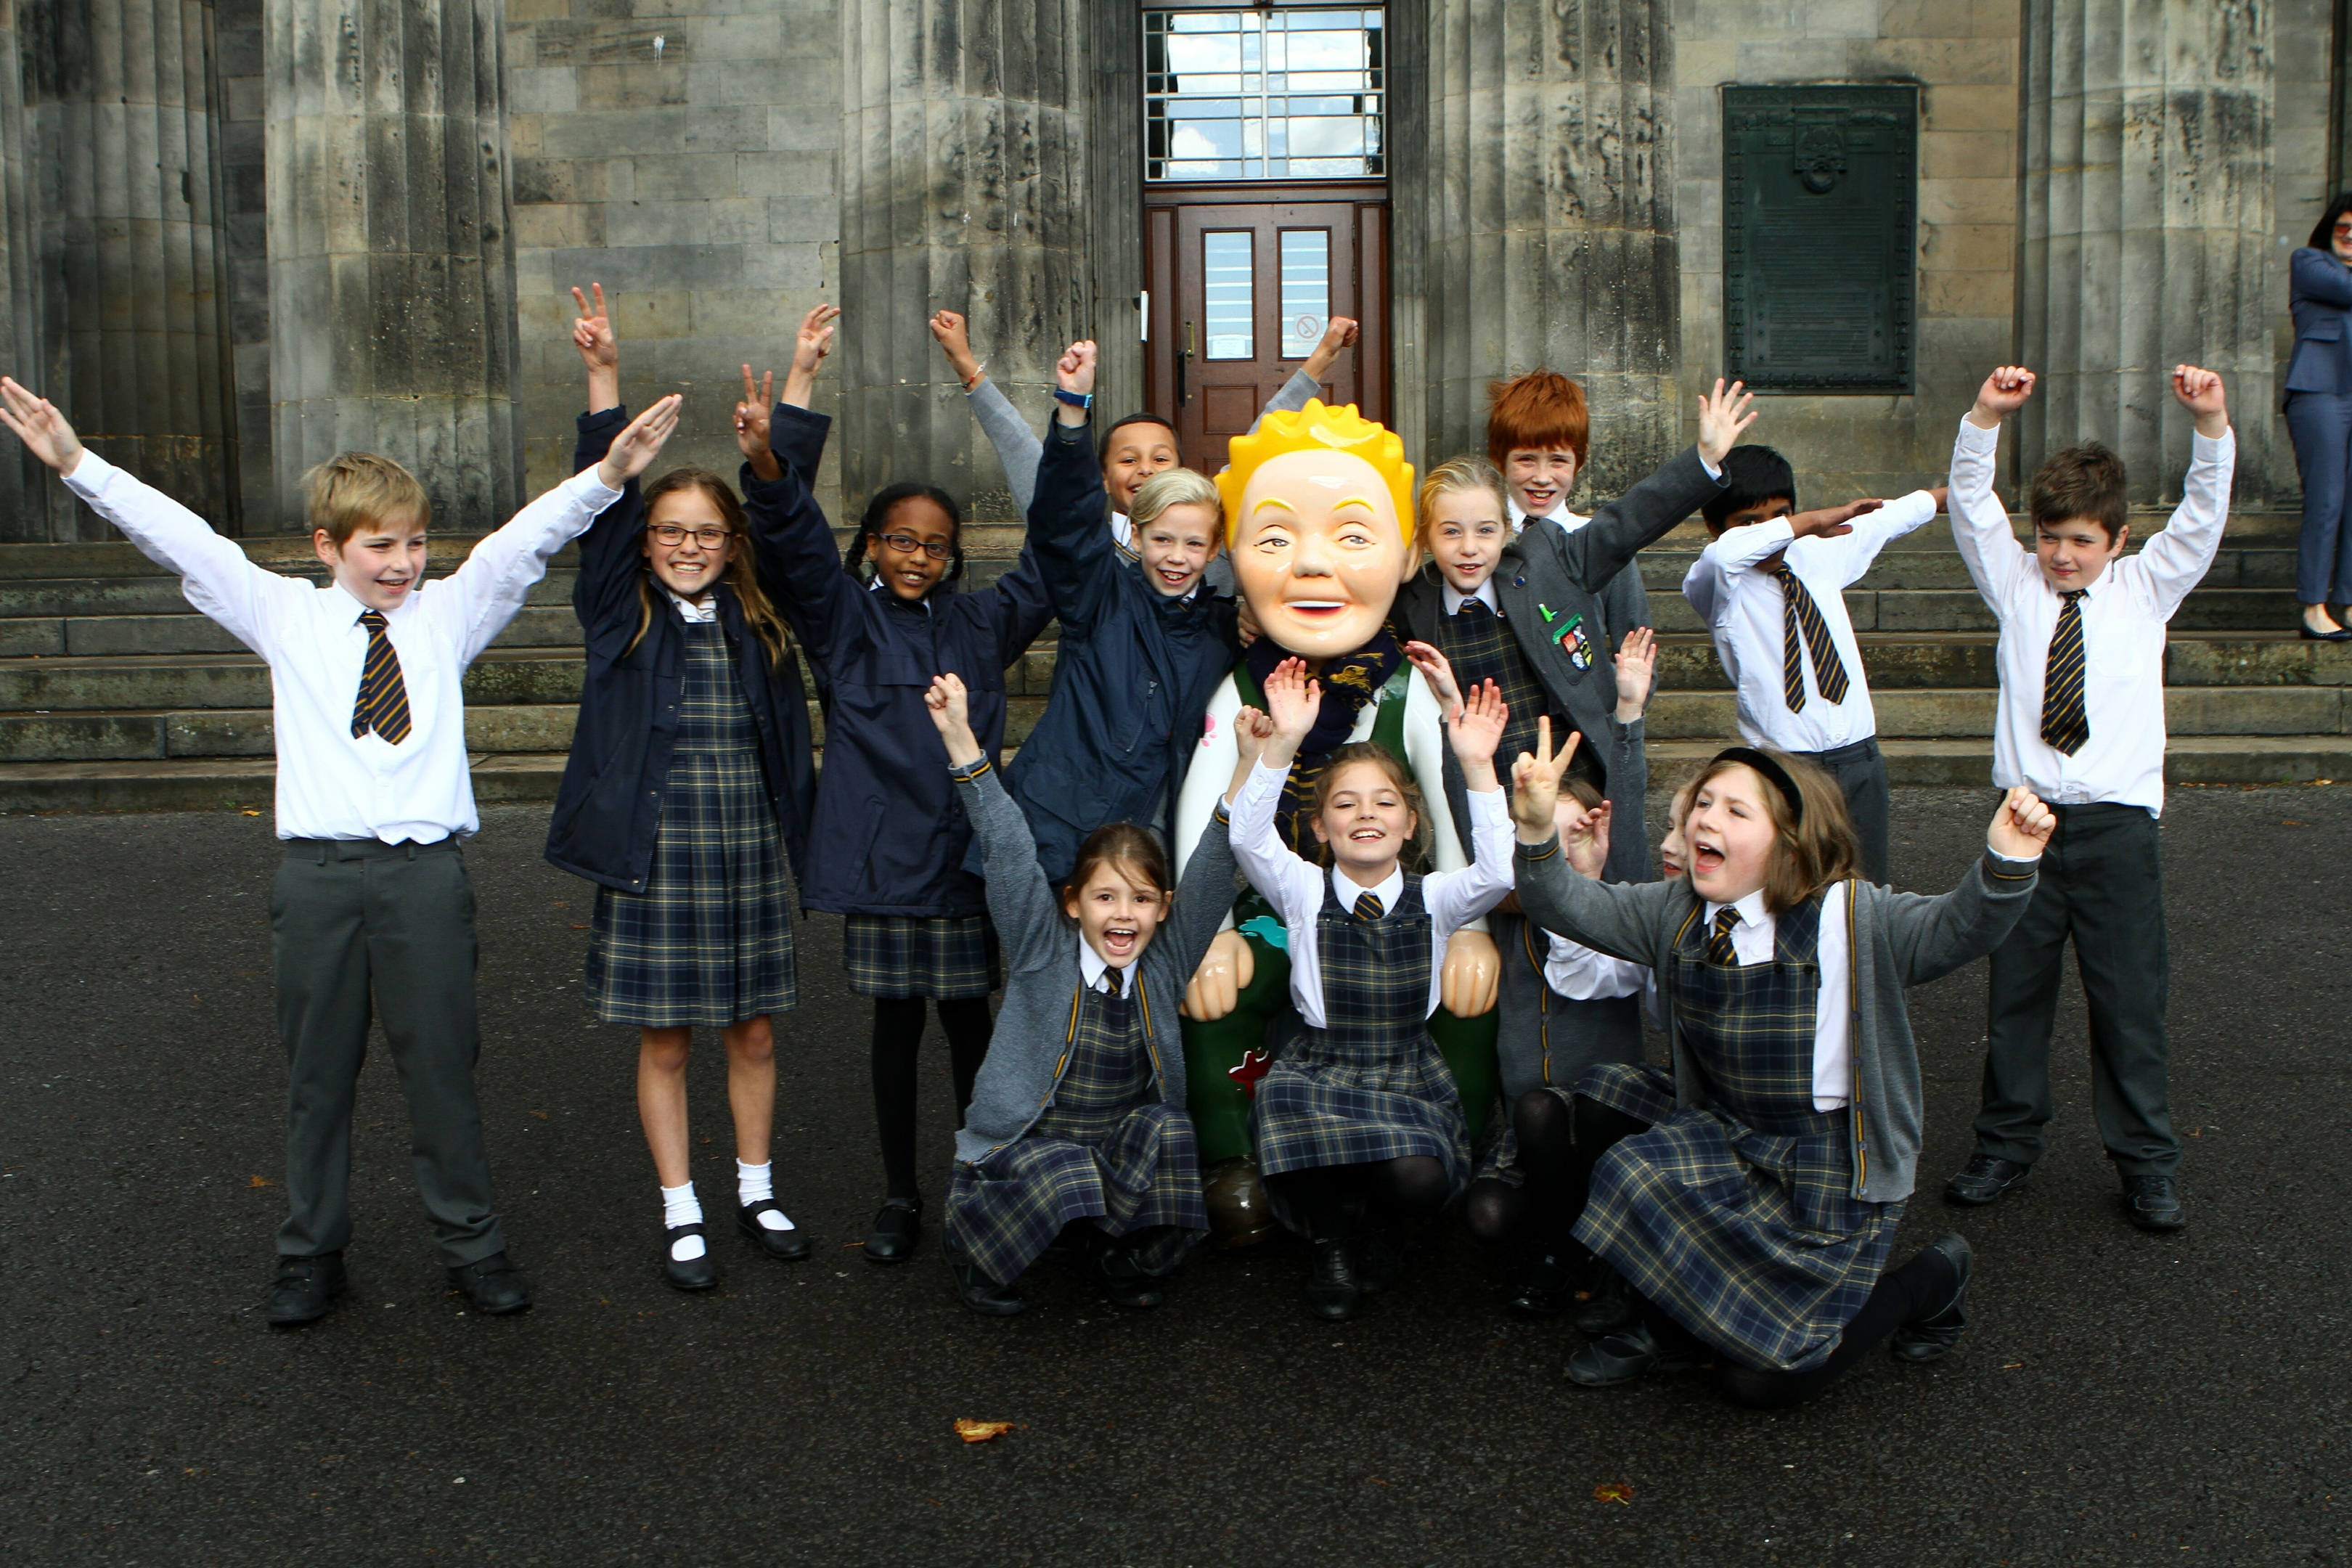 Oor Wullie returned, much to the delight of the pupils.